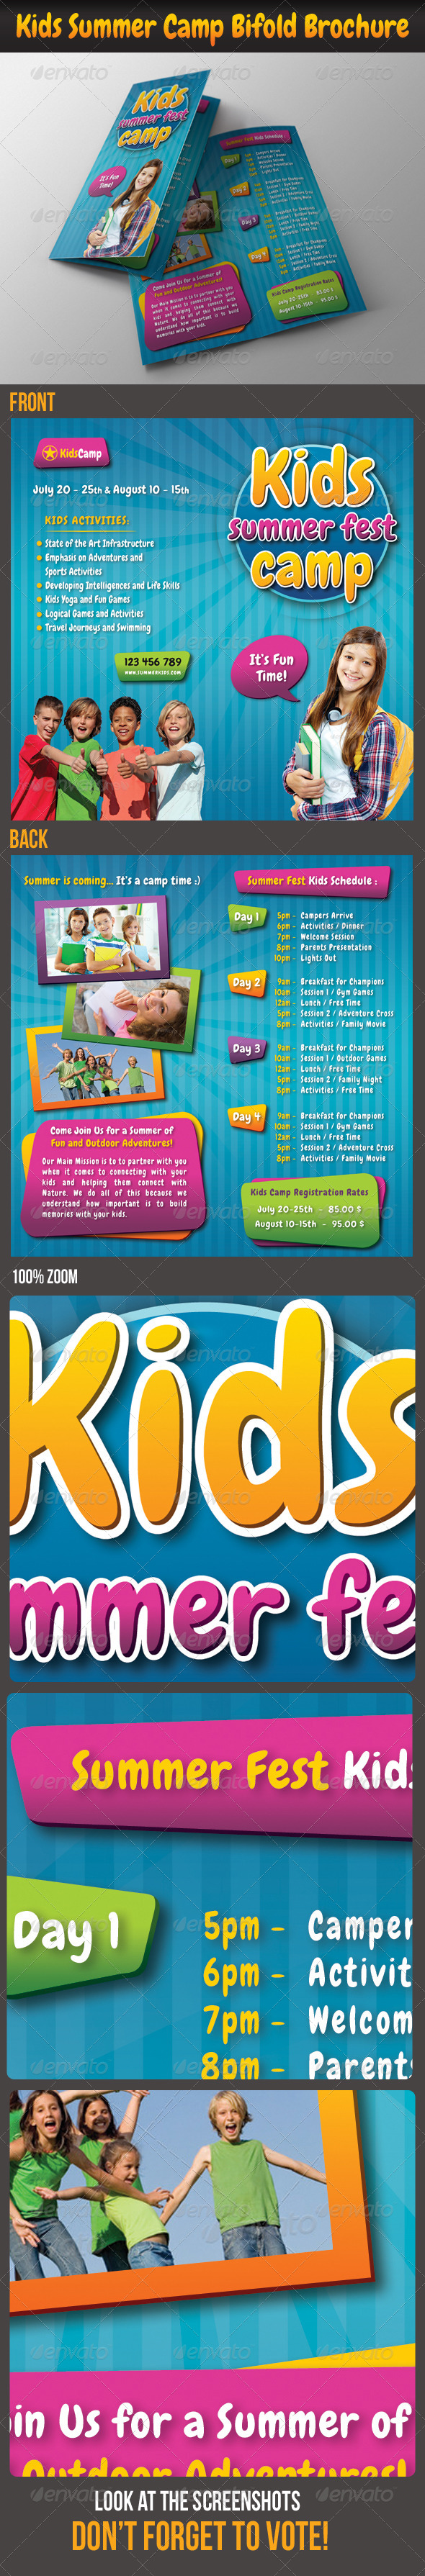 GraphicRiver Kids Summer Camp Bifold Brochure 01 8064324